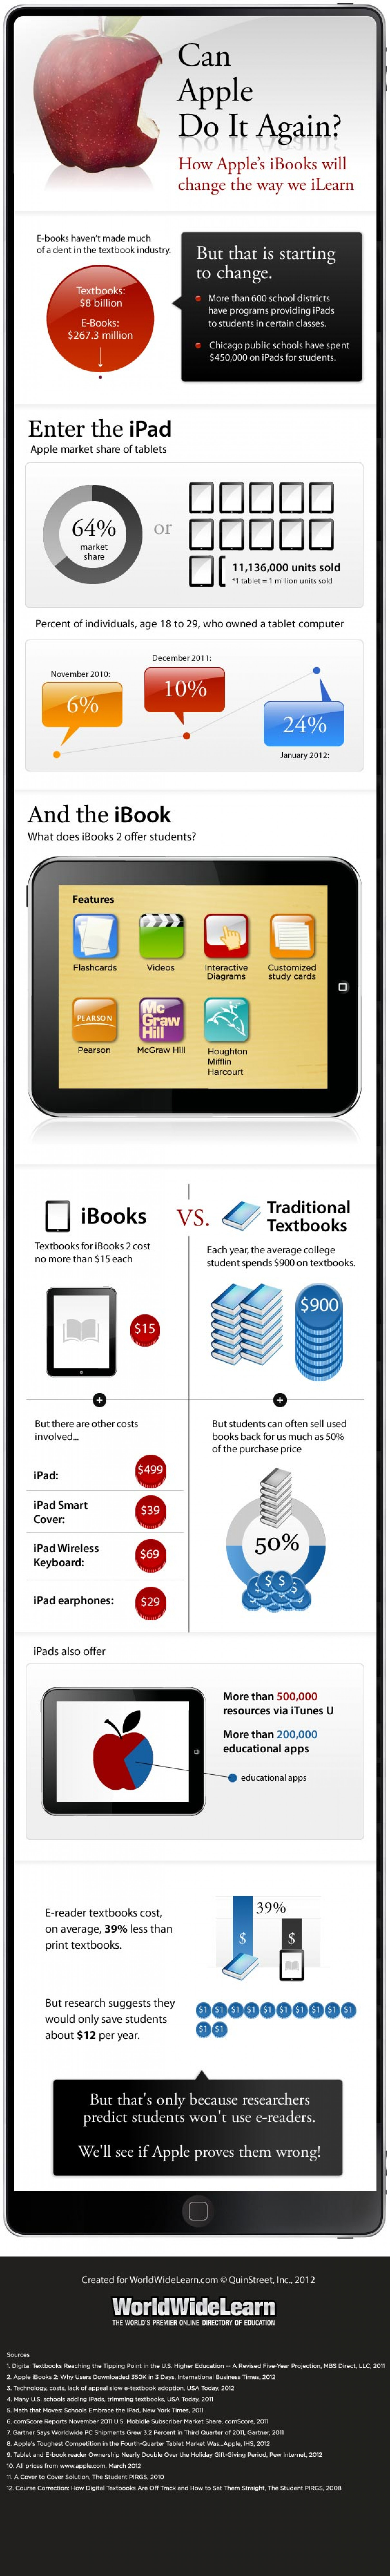 Can Apple revolutionize textbooks? Infographic